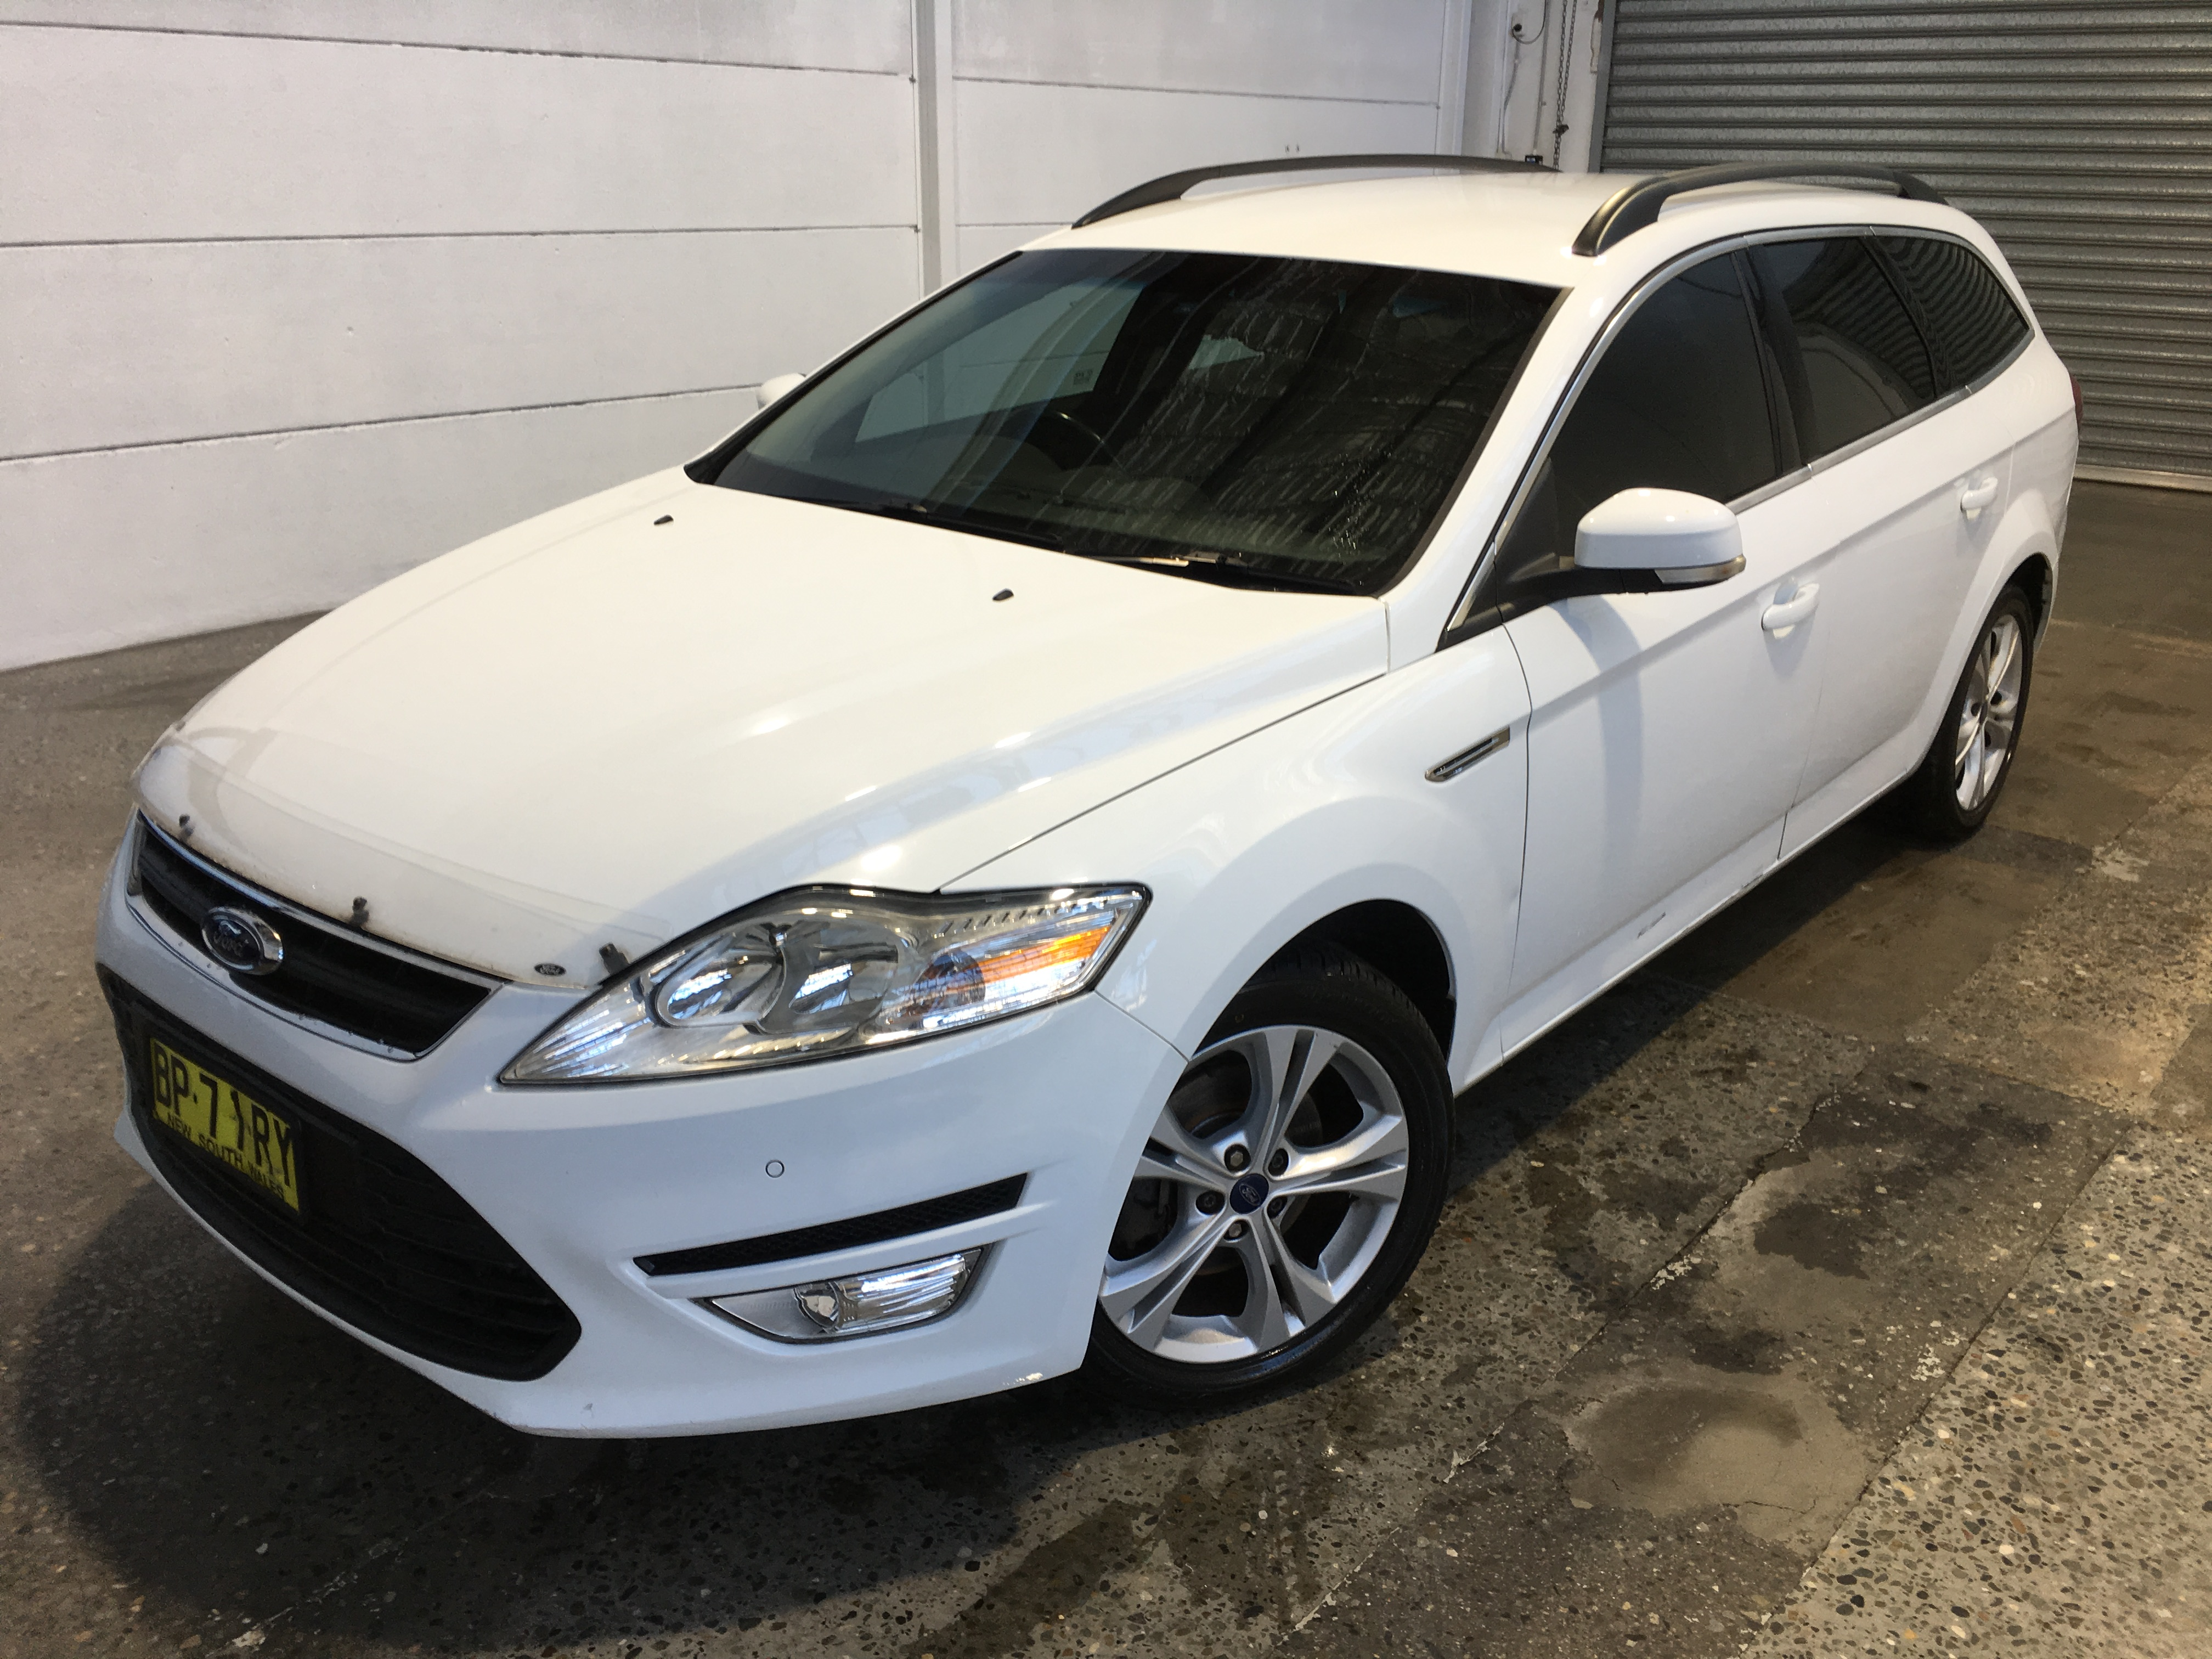 2012 Ford Mondeo Zetec TDCi MC Turbo Diesel Automatic Wagon